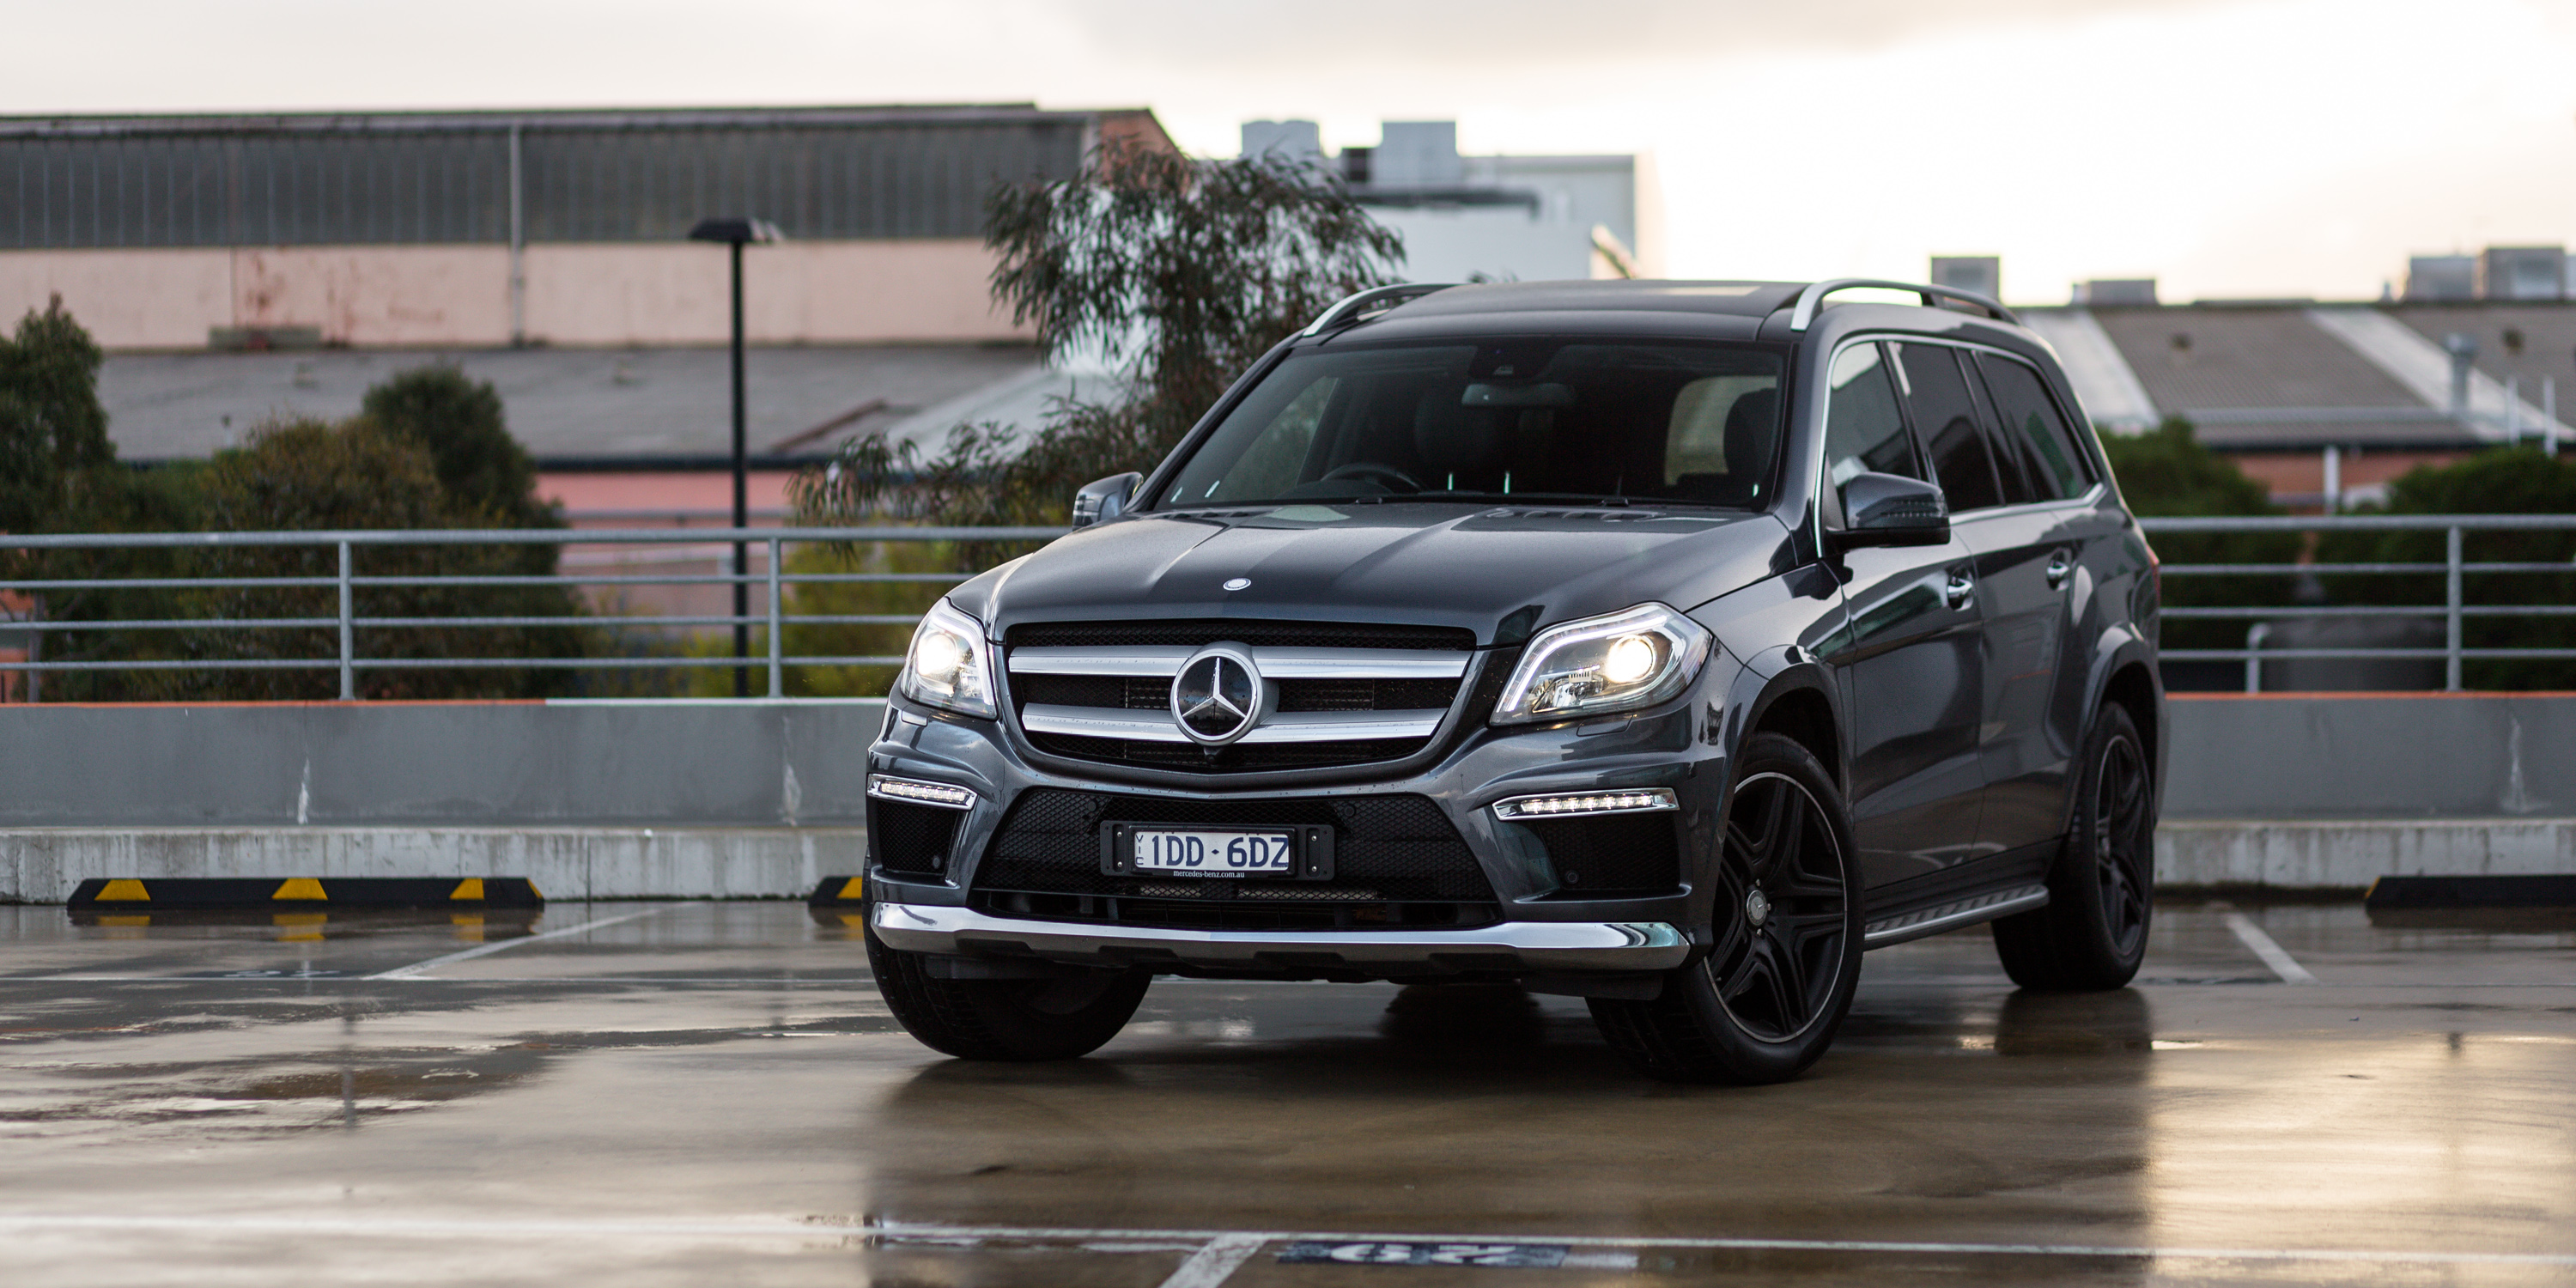 2015 Mercedes-Benz GL350 Review : Long-term report two